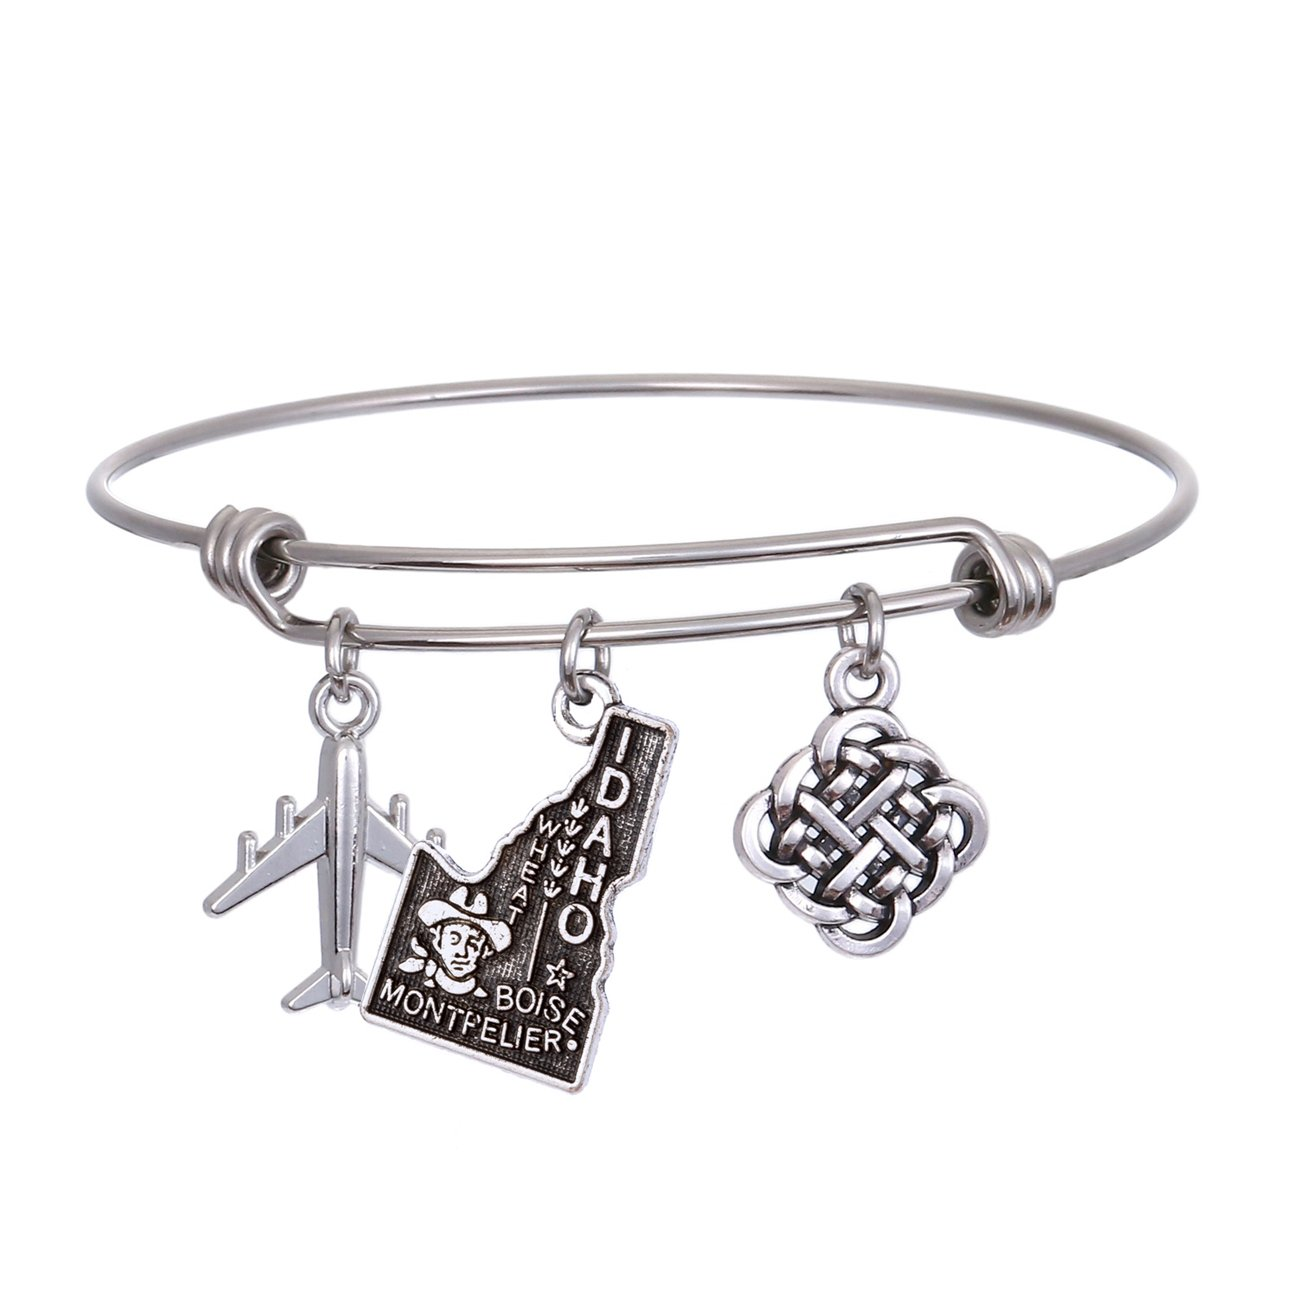 JJTZX State Bangle U.S. Map Charm Expandable Travel Bracelet Long Distance Relationship Gift Best Friends Bracelet (Idaho)